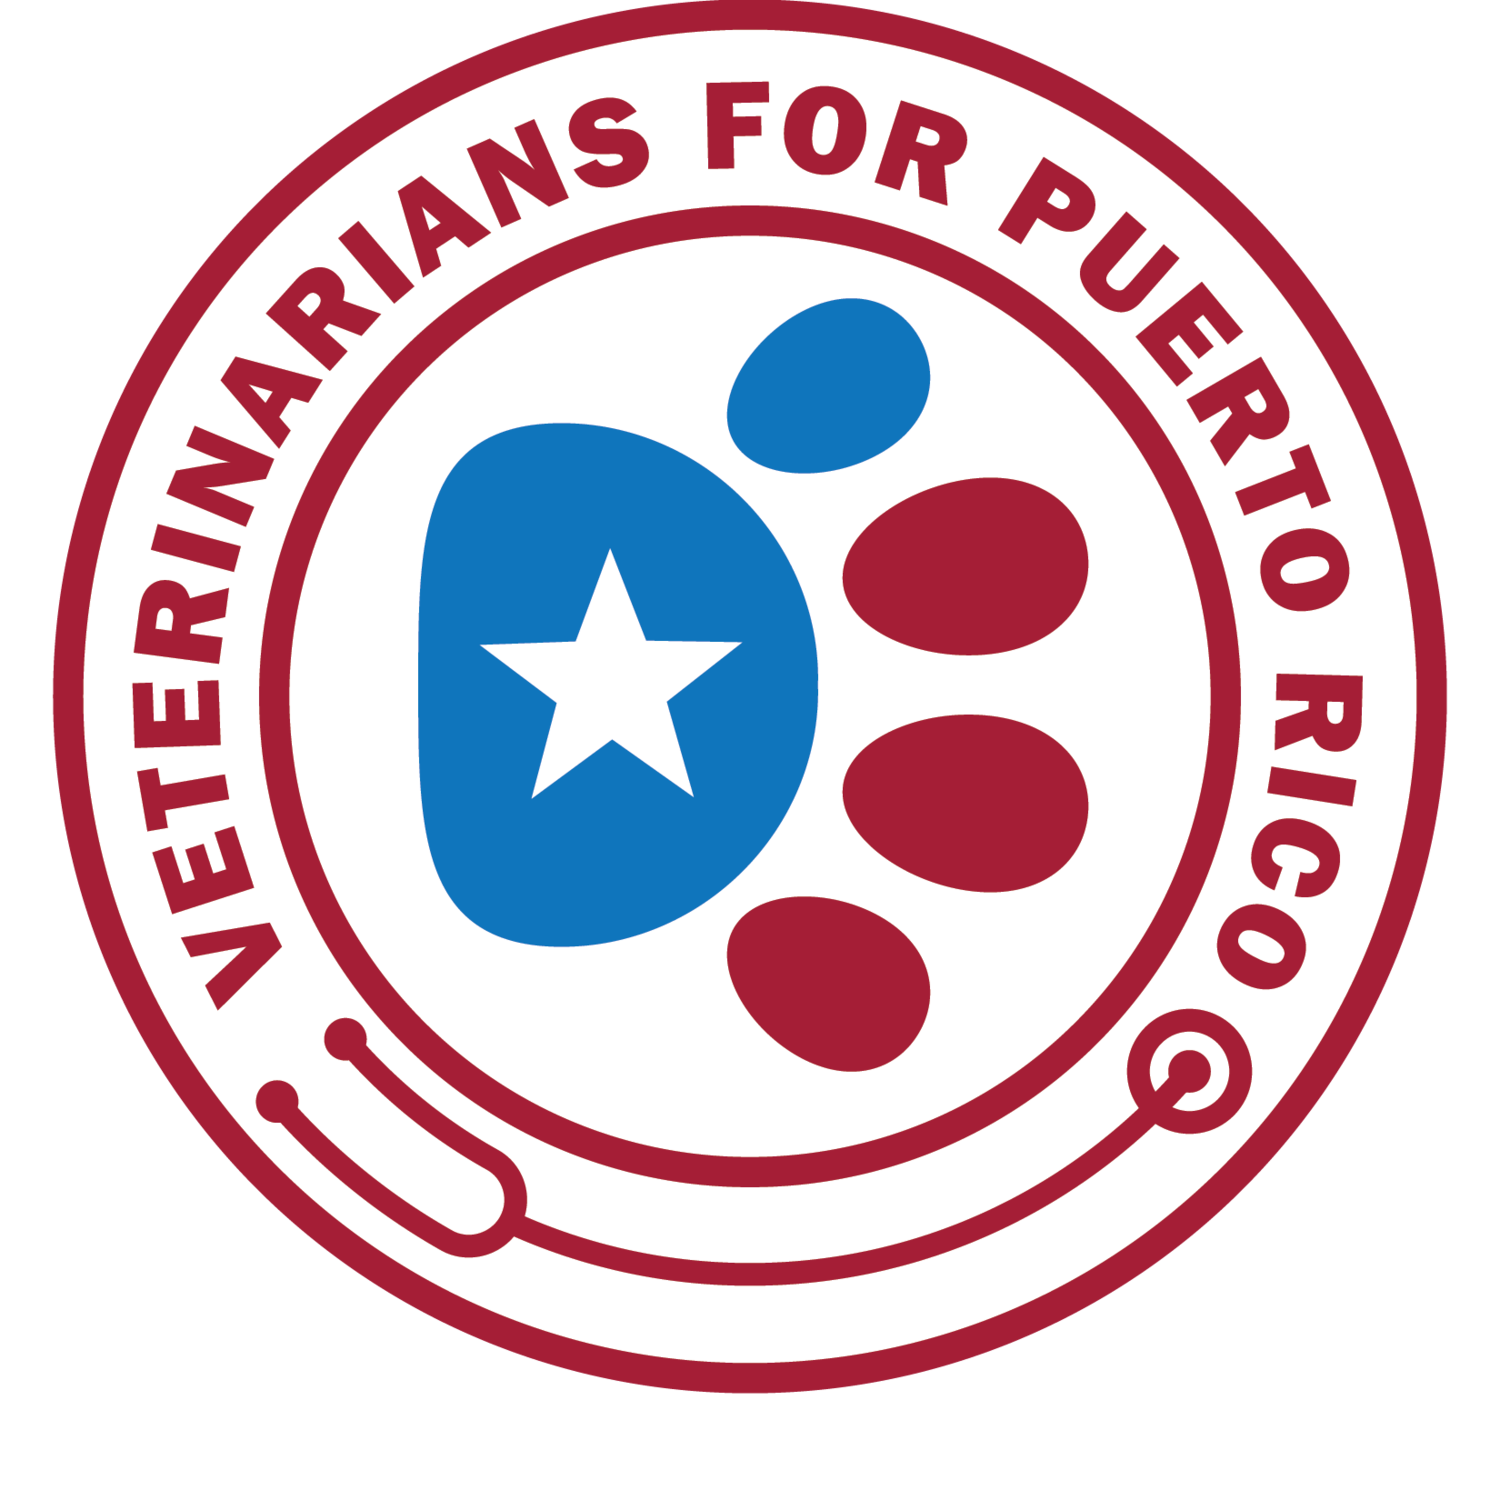 Veterinarians for Puerto Rico